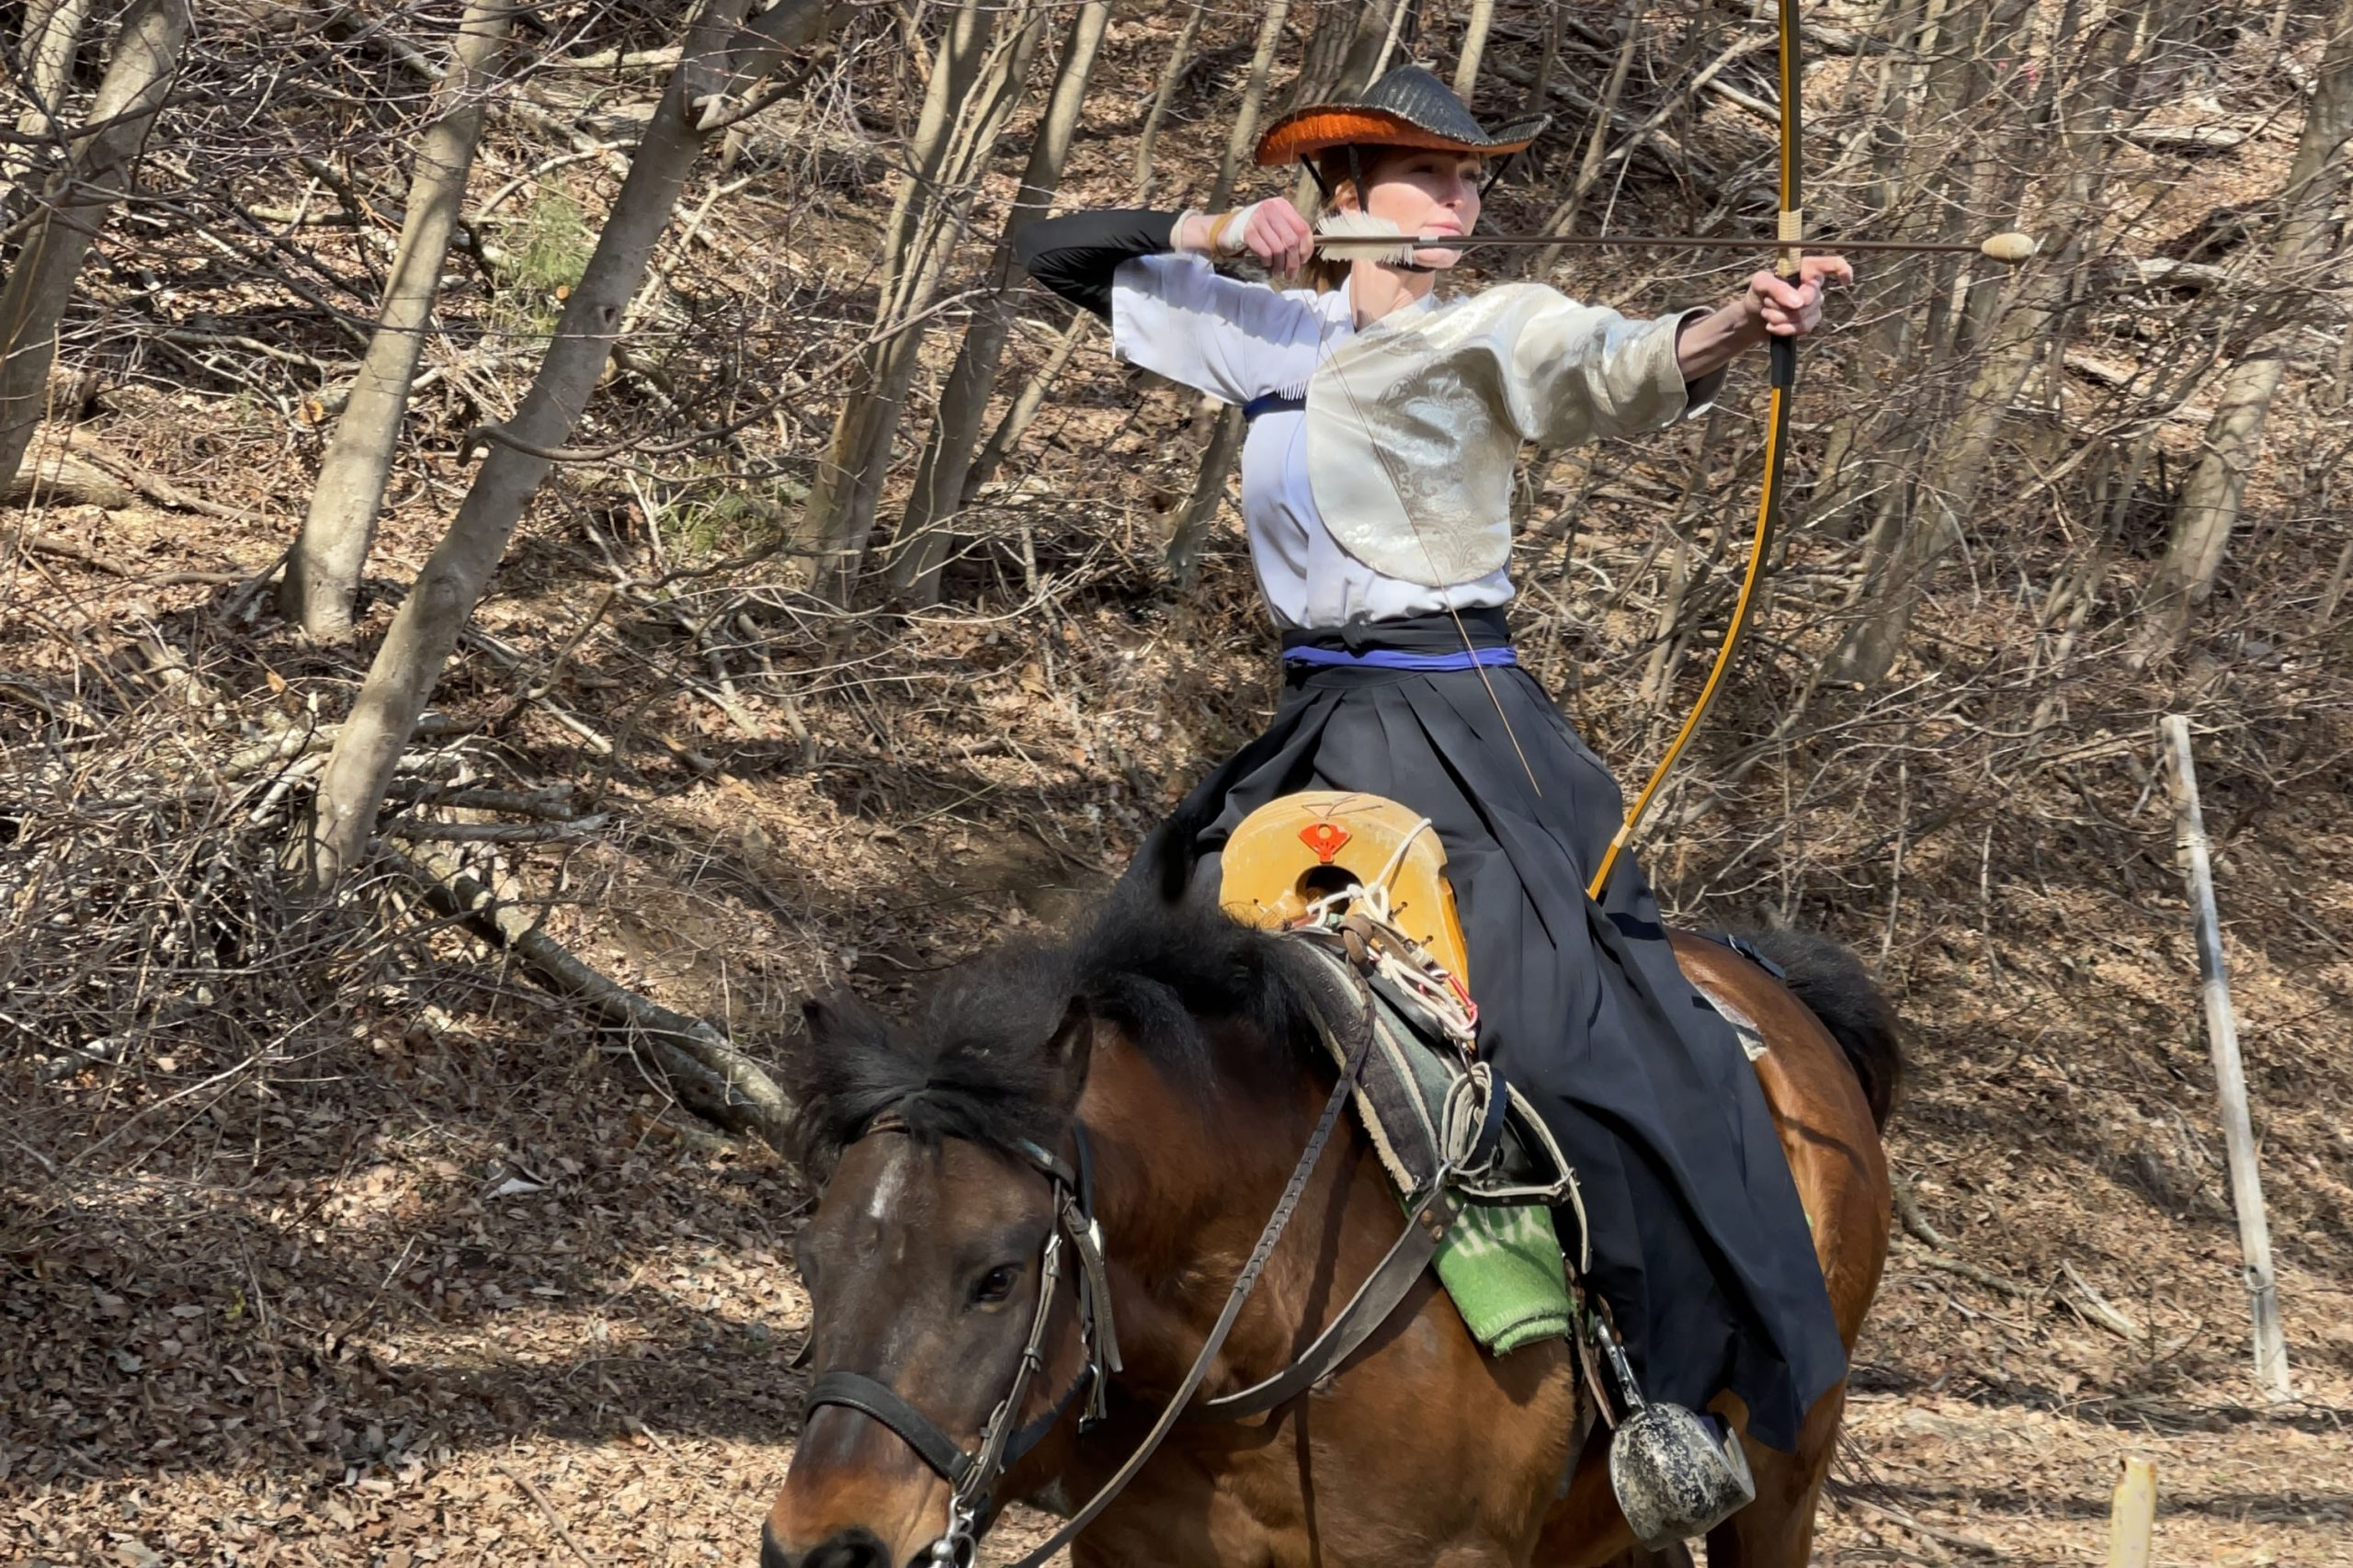 Sports Yabusame: Blending traditional equine culture with sport.